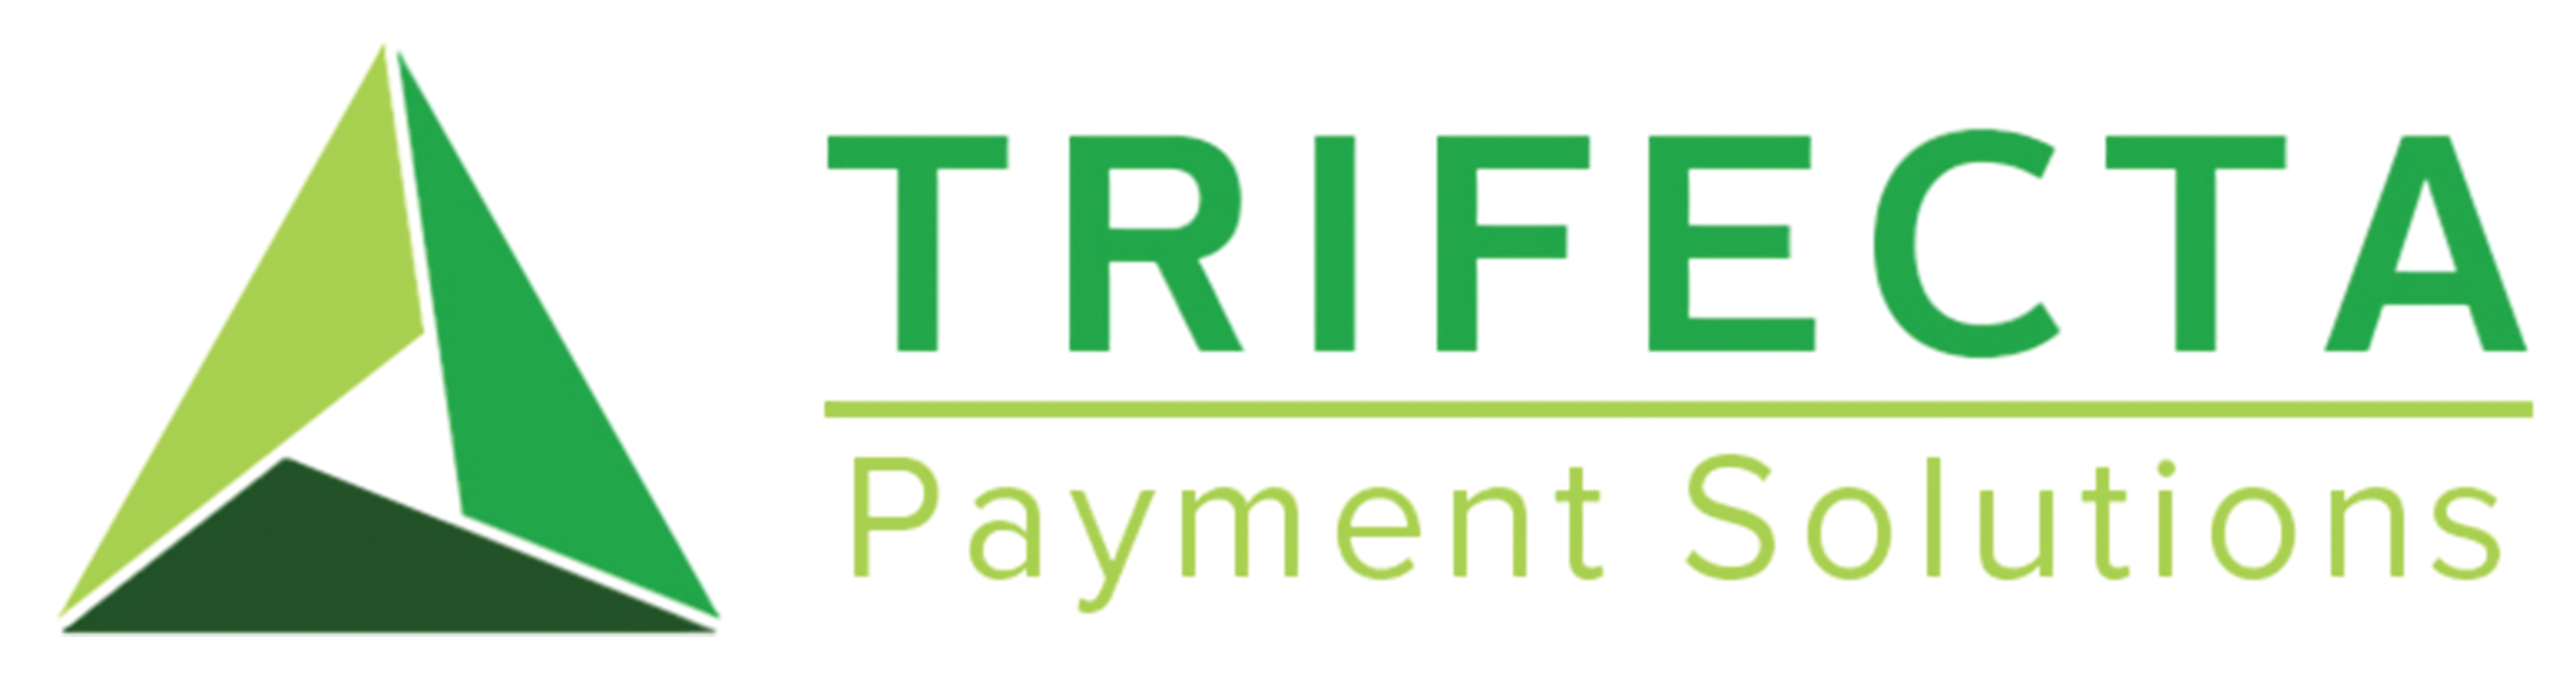 Trifecta Payments